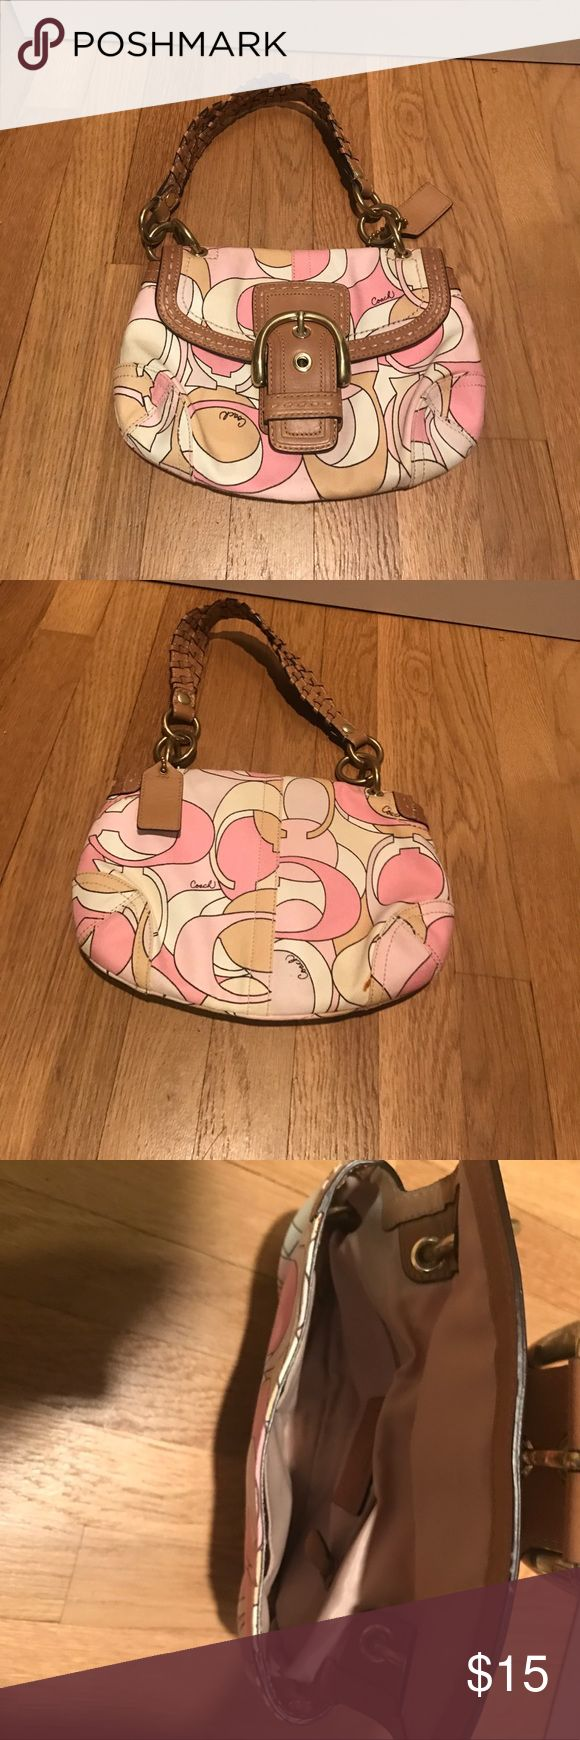 Authentic Pink Coach Purse Tan and light pink coach purse with C logo throughout, authentic, great condition Coach Bags Mini Bags